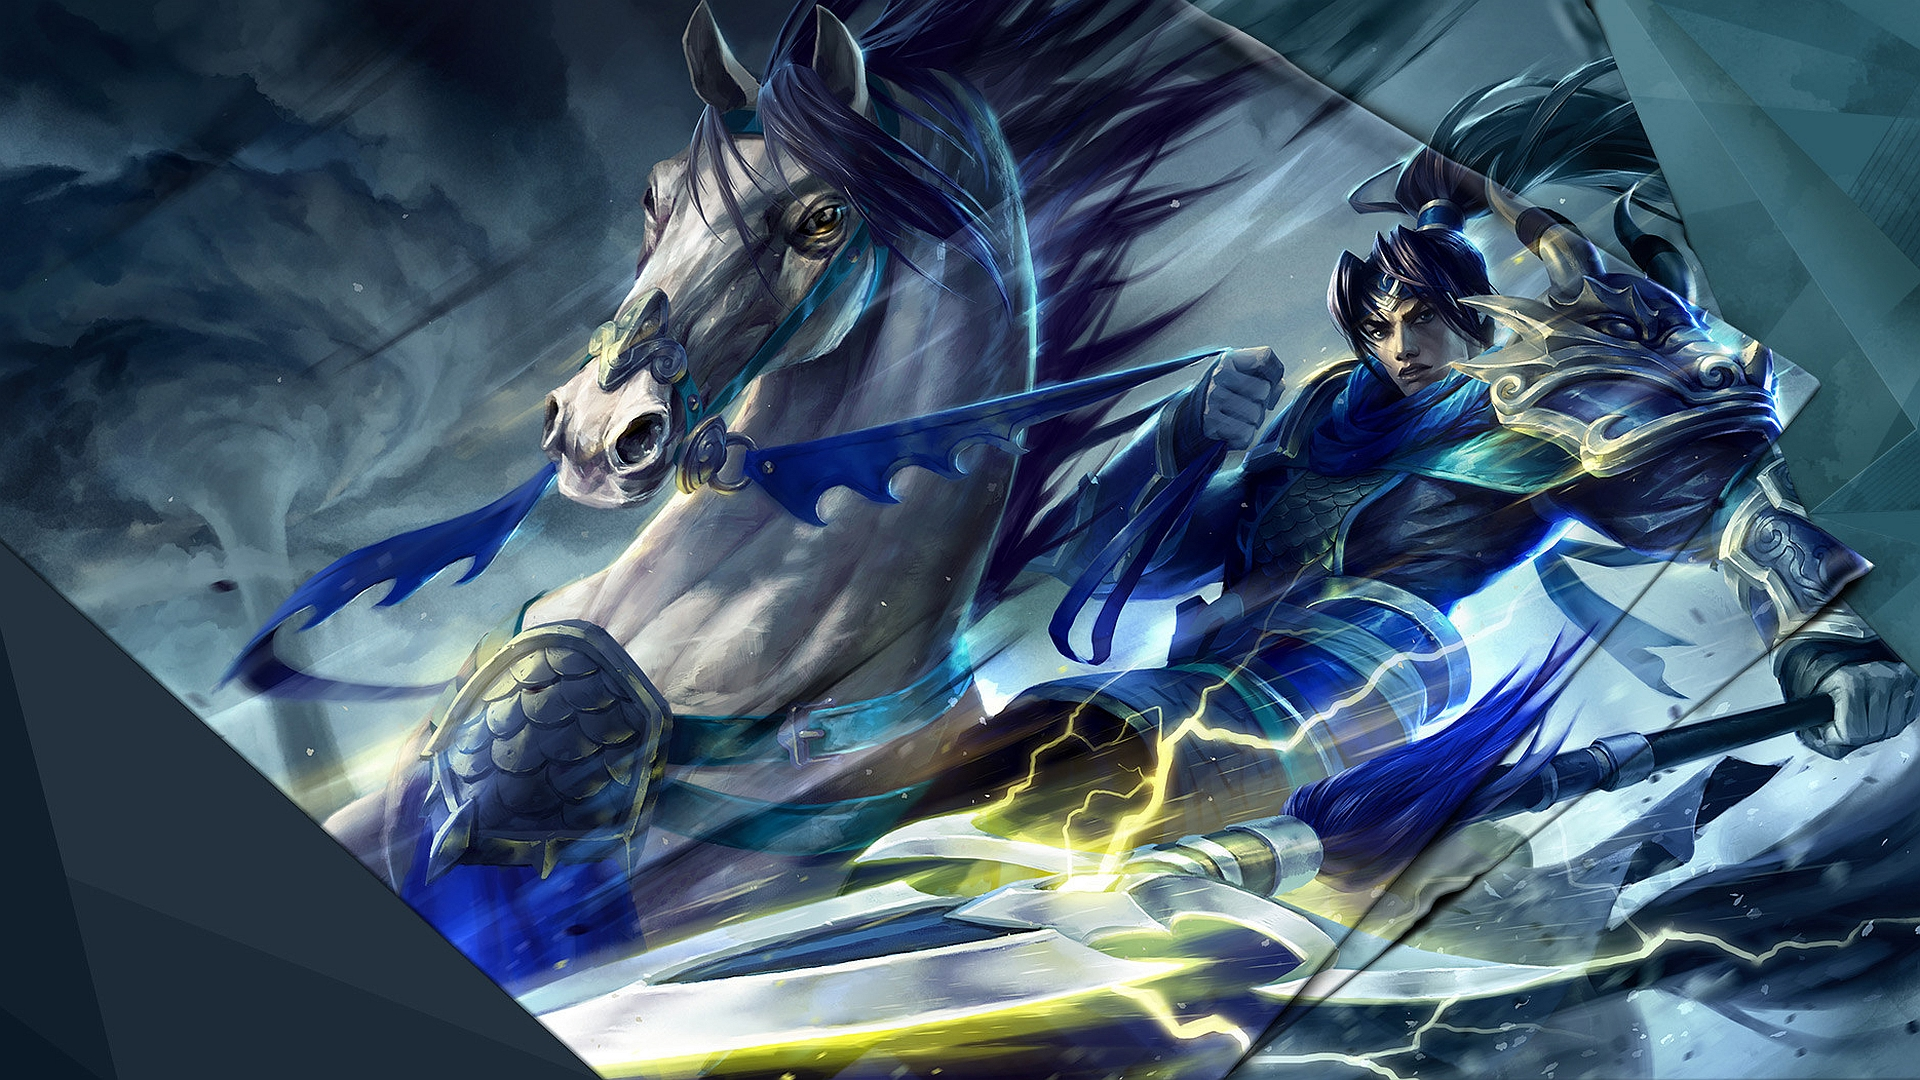 Wallpaper Iphone 3d Touch League Of Legends Animated Movie Hd Wallpapers All Hd